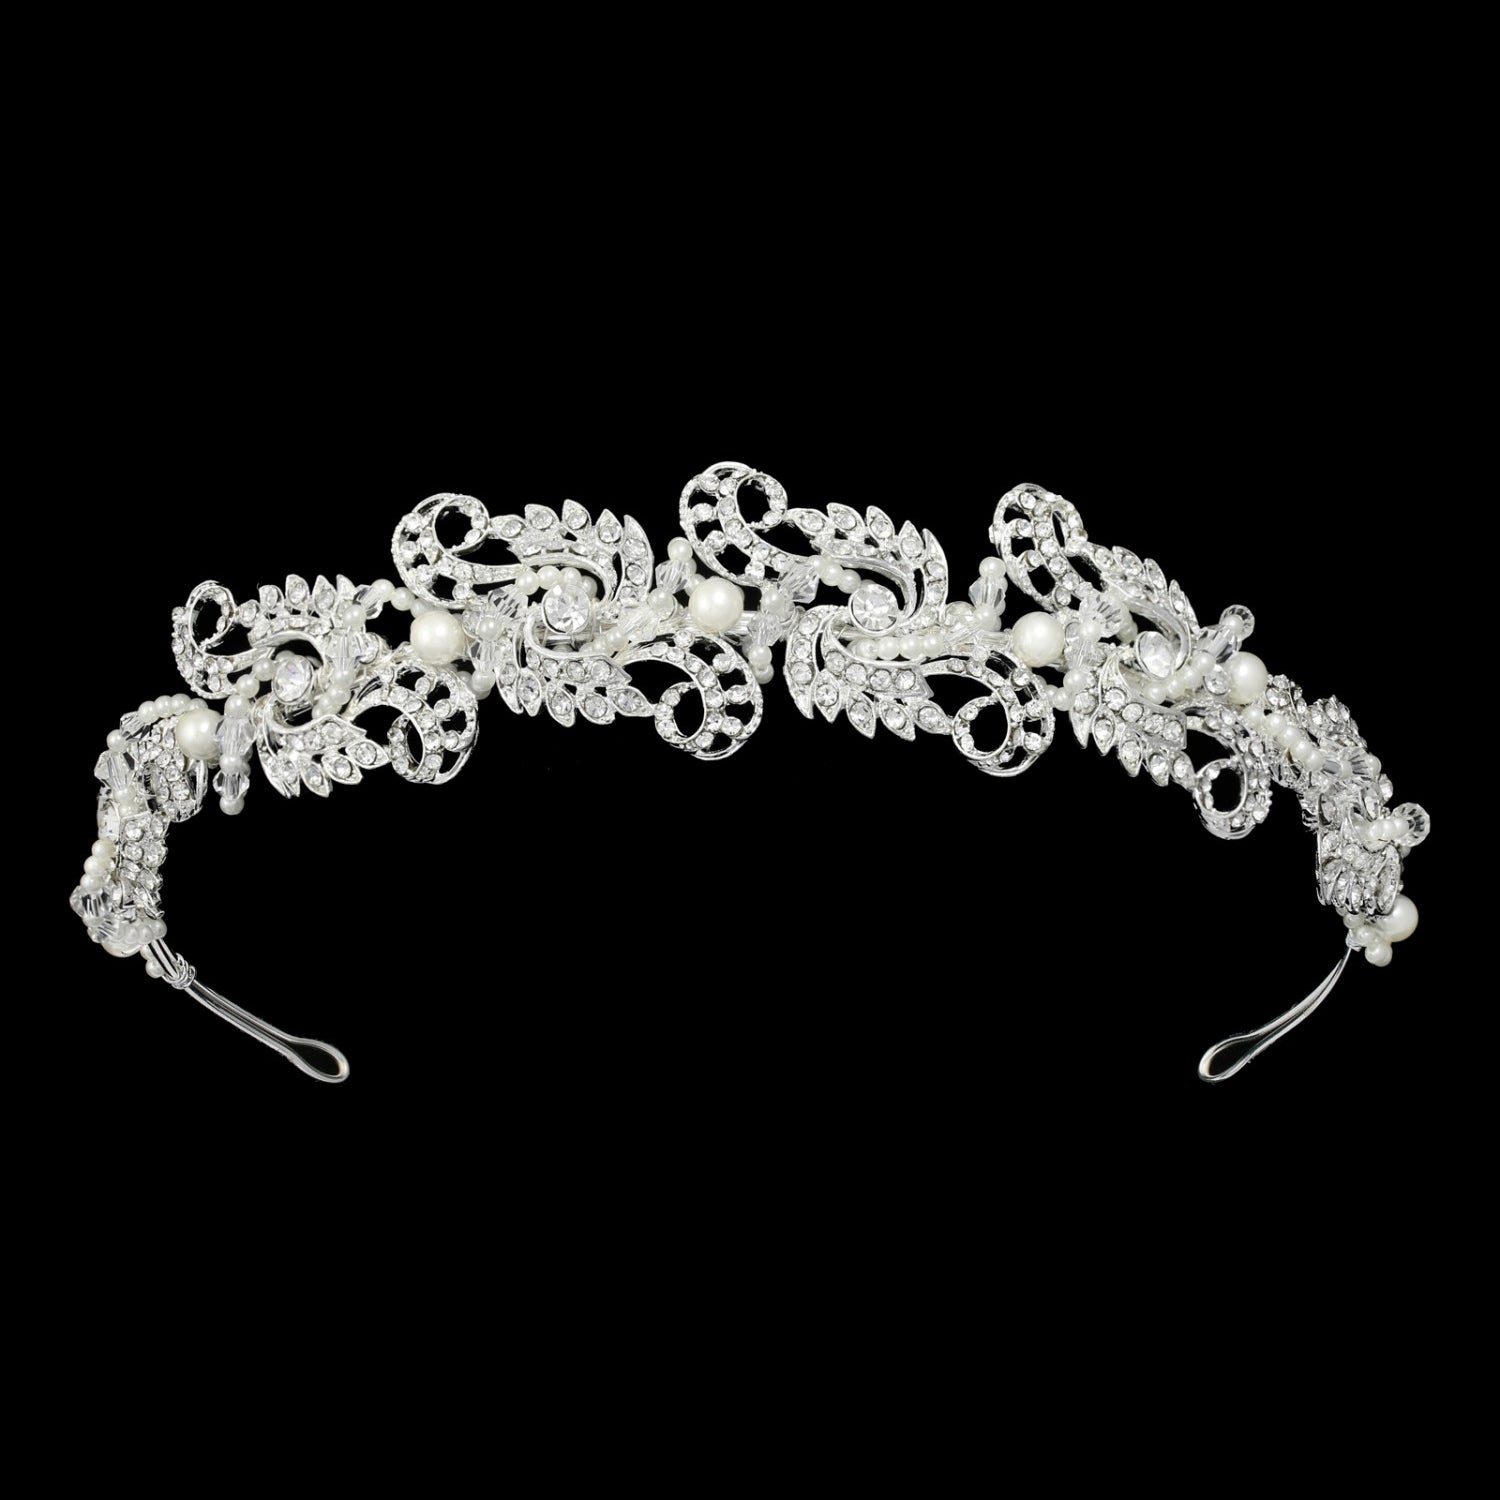 Oriana Bridal Tiara - Hair Accessories - Tiara & Crown - Roman & French